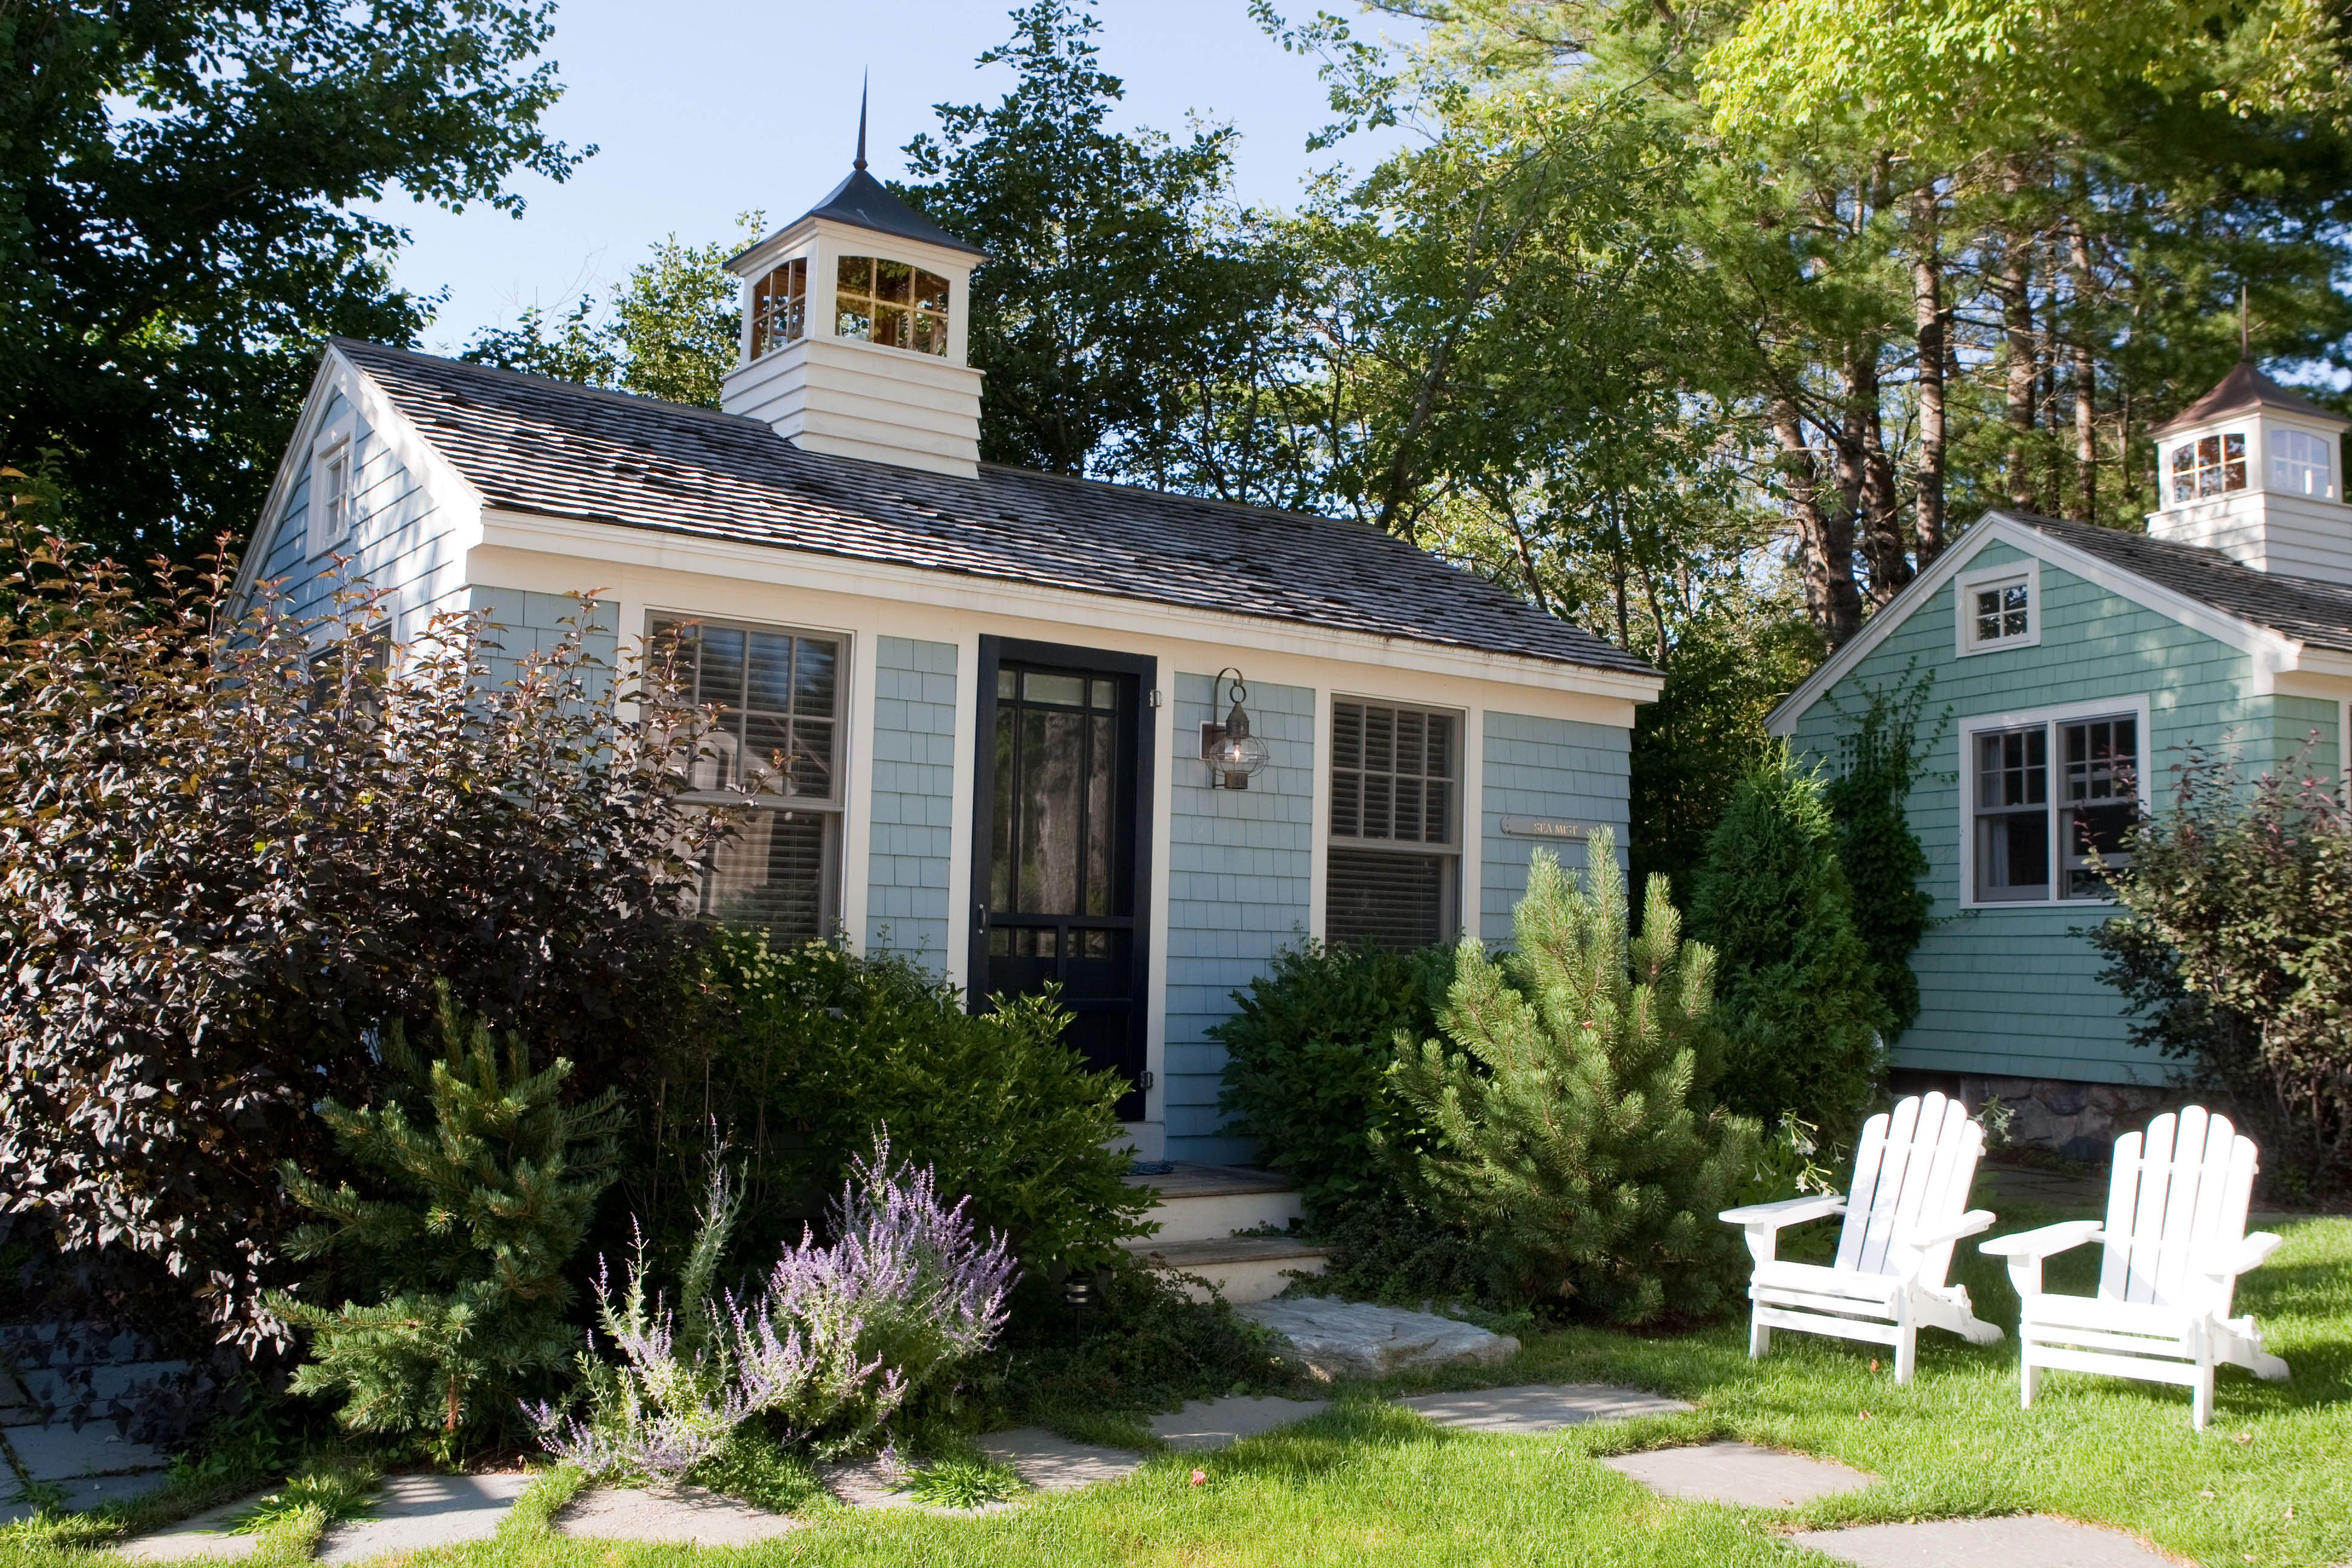 The Cottages At Cabot Cove Maine Discount Special Travel Maine Cottage Rustic Cottage Cabot Cove